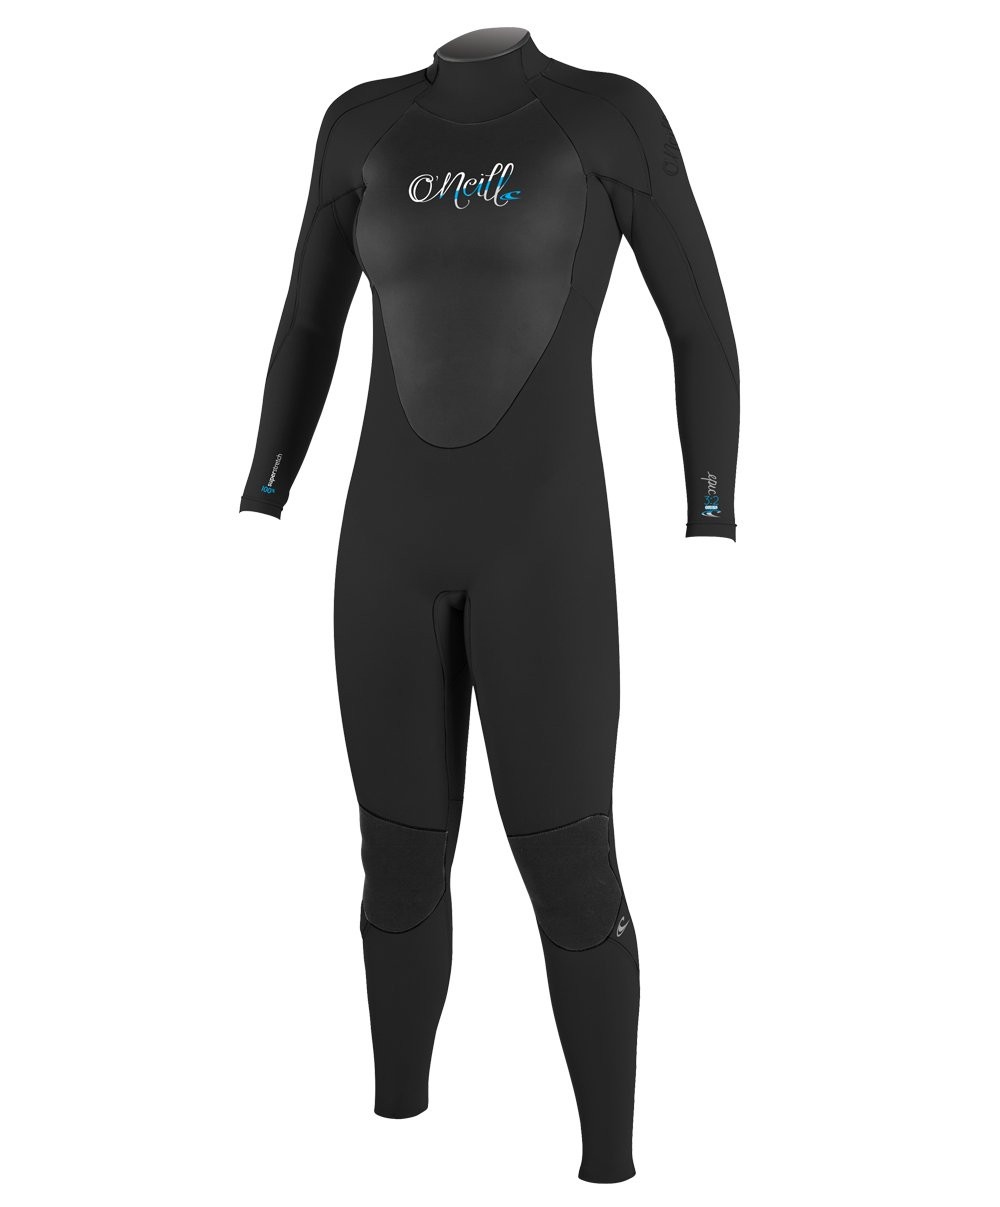 Amazon.com   O Neill Wetsuits Women s Epic 4 3 mm Full Suit   Surfing  Wetsuits   Sports   Outdoors 411902171